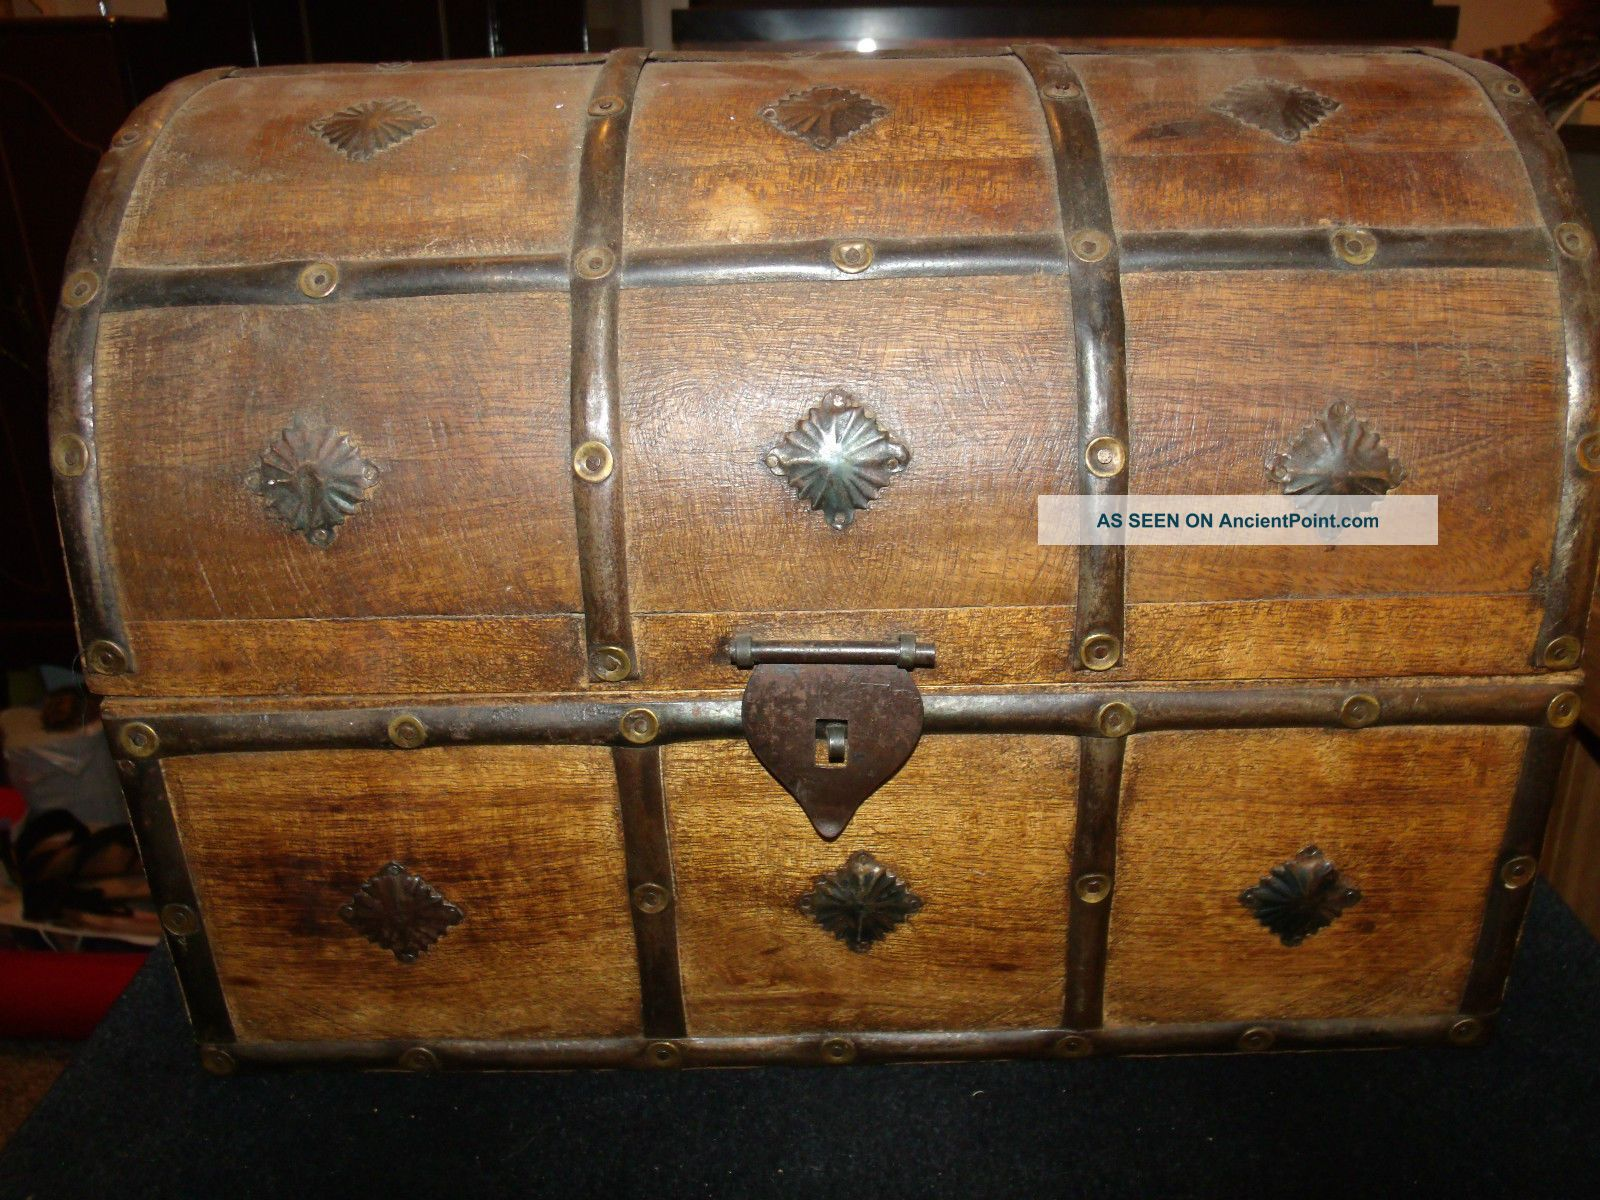 Old Antique Or Vintage Pirate Style Treasure Chest,  Age Unknown,  20th Century Unknown photo